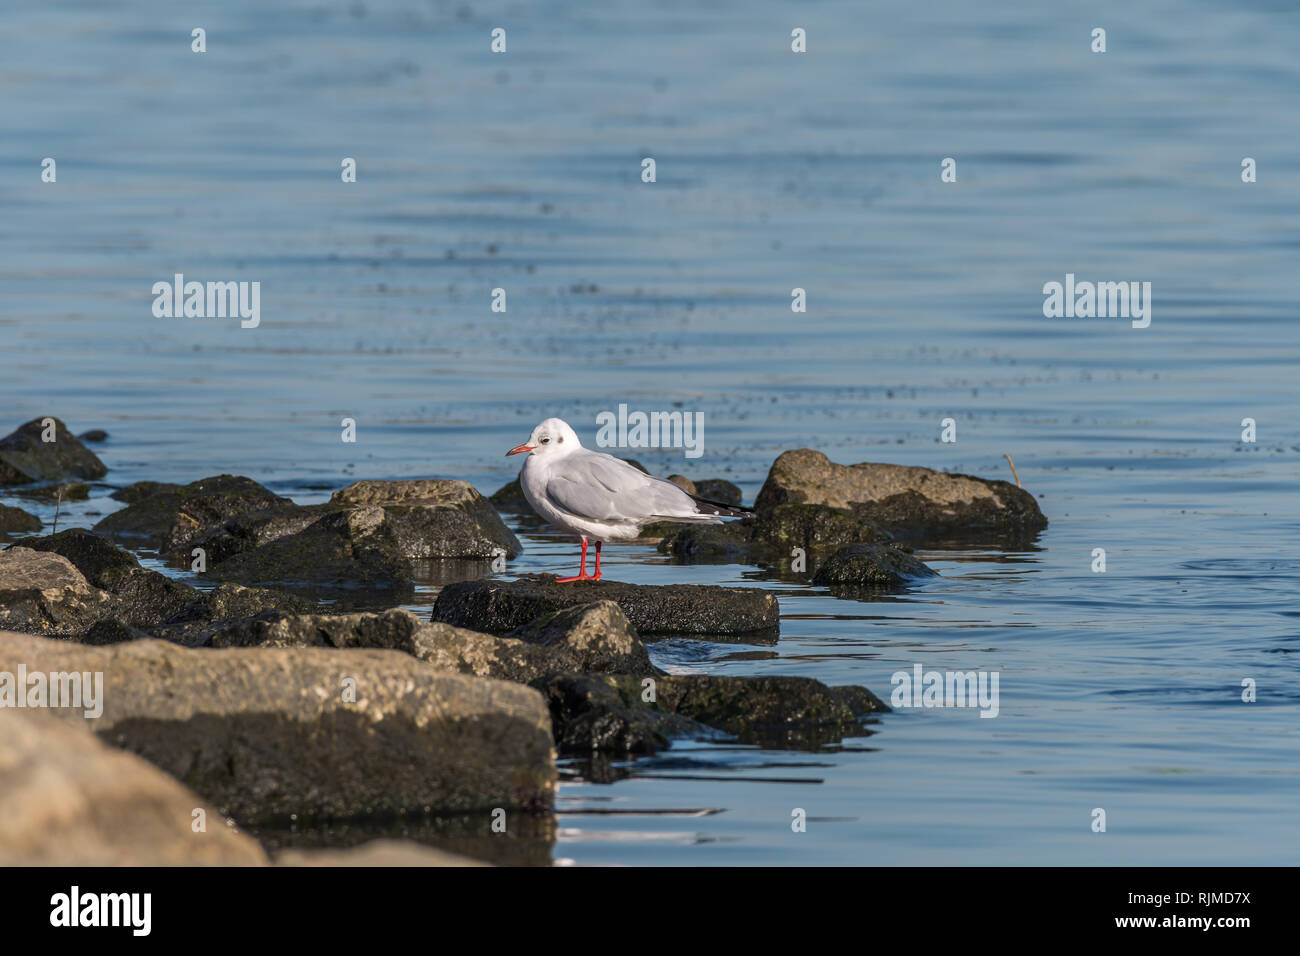 Black-headed Gull [Larus ridibundus], adult winter plumage, commonly spotted in Pohang, South Korea Stock Photo